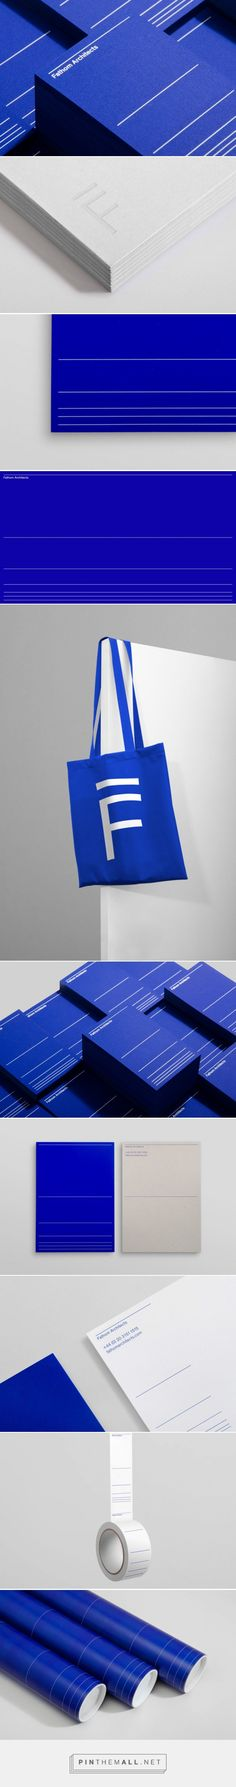 Fathom Architects Branding by dn&co